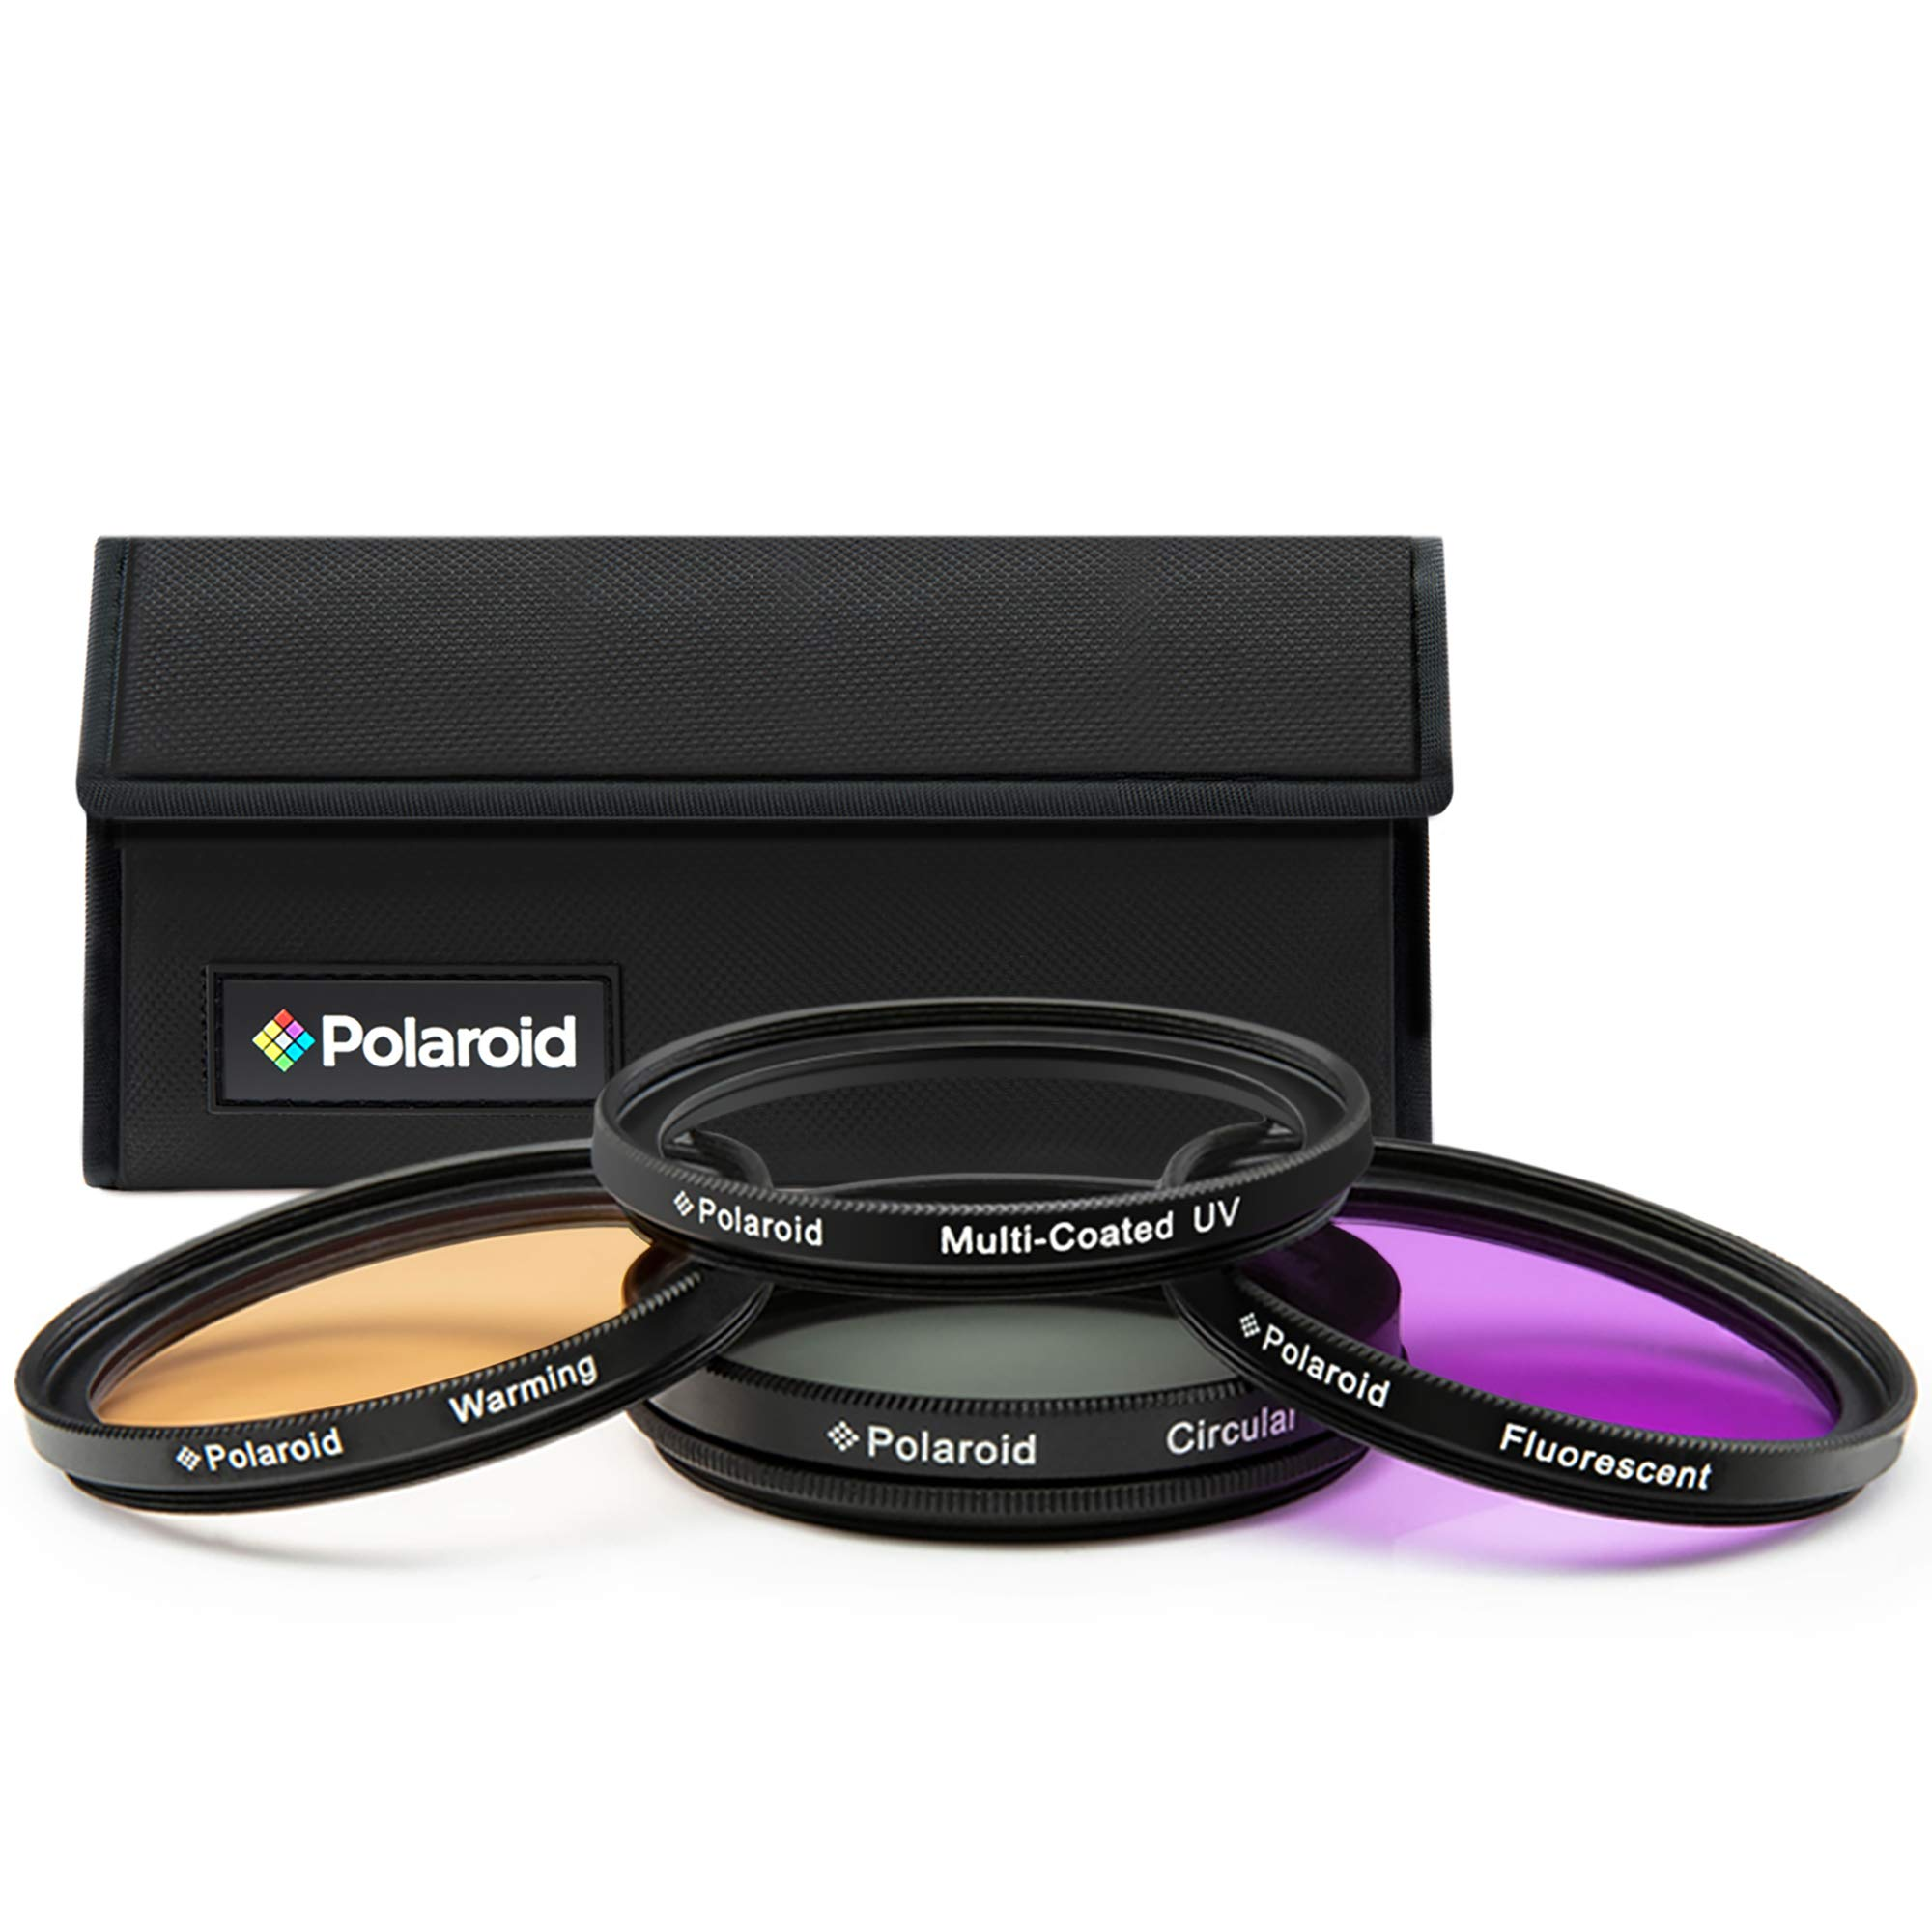 Polaroid Optics 82mm Multi-Coated Circular Polarizer Filter Compatible w// All Popular Camera Lens Models CPL For /'On Location/' Color Saturation Contrast /& Reflection Control